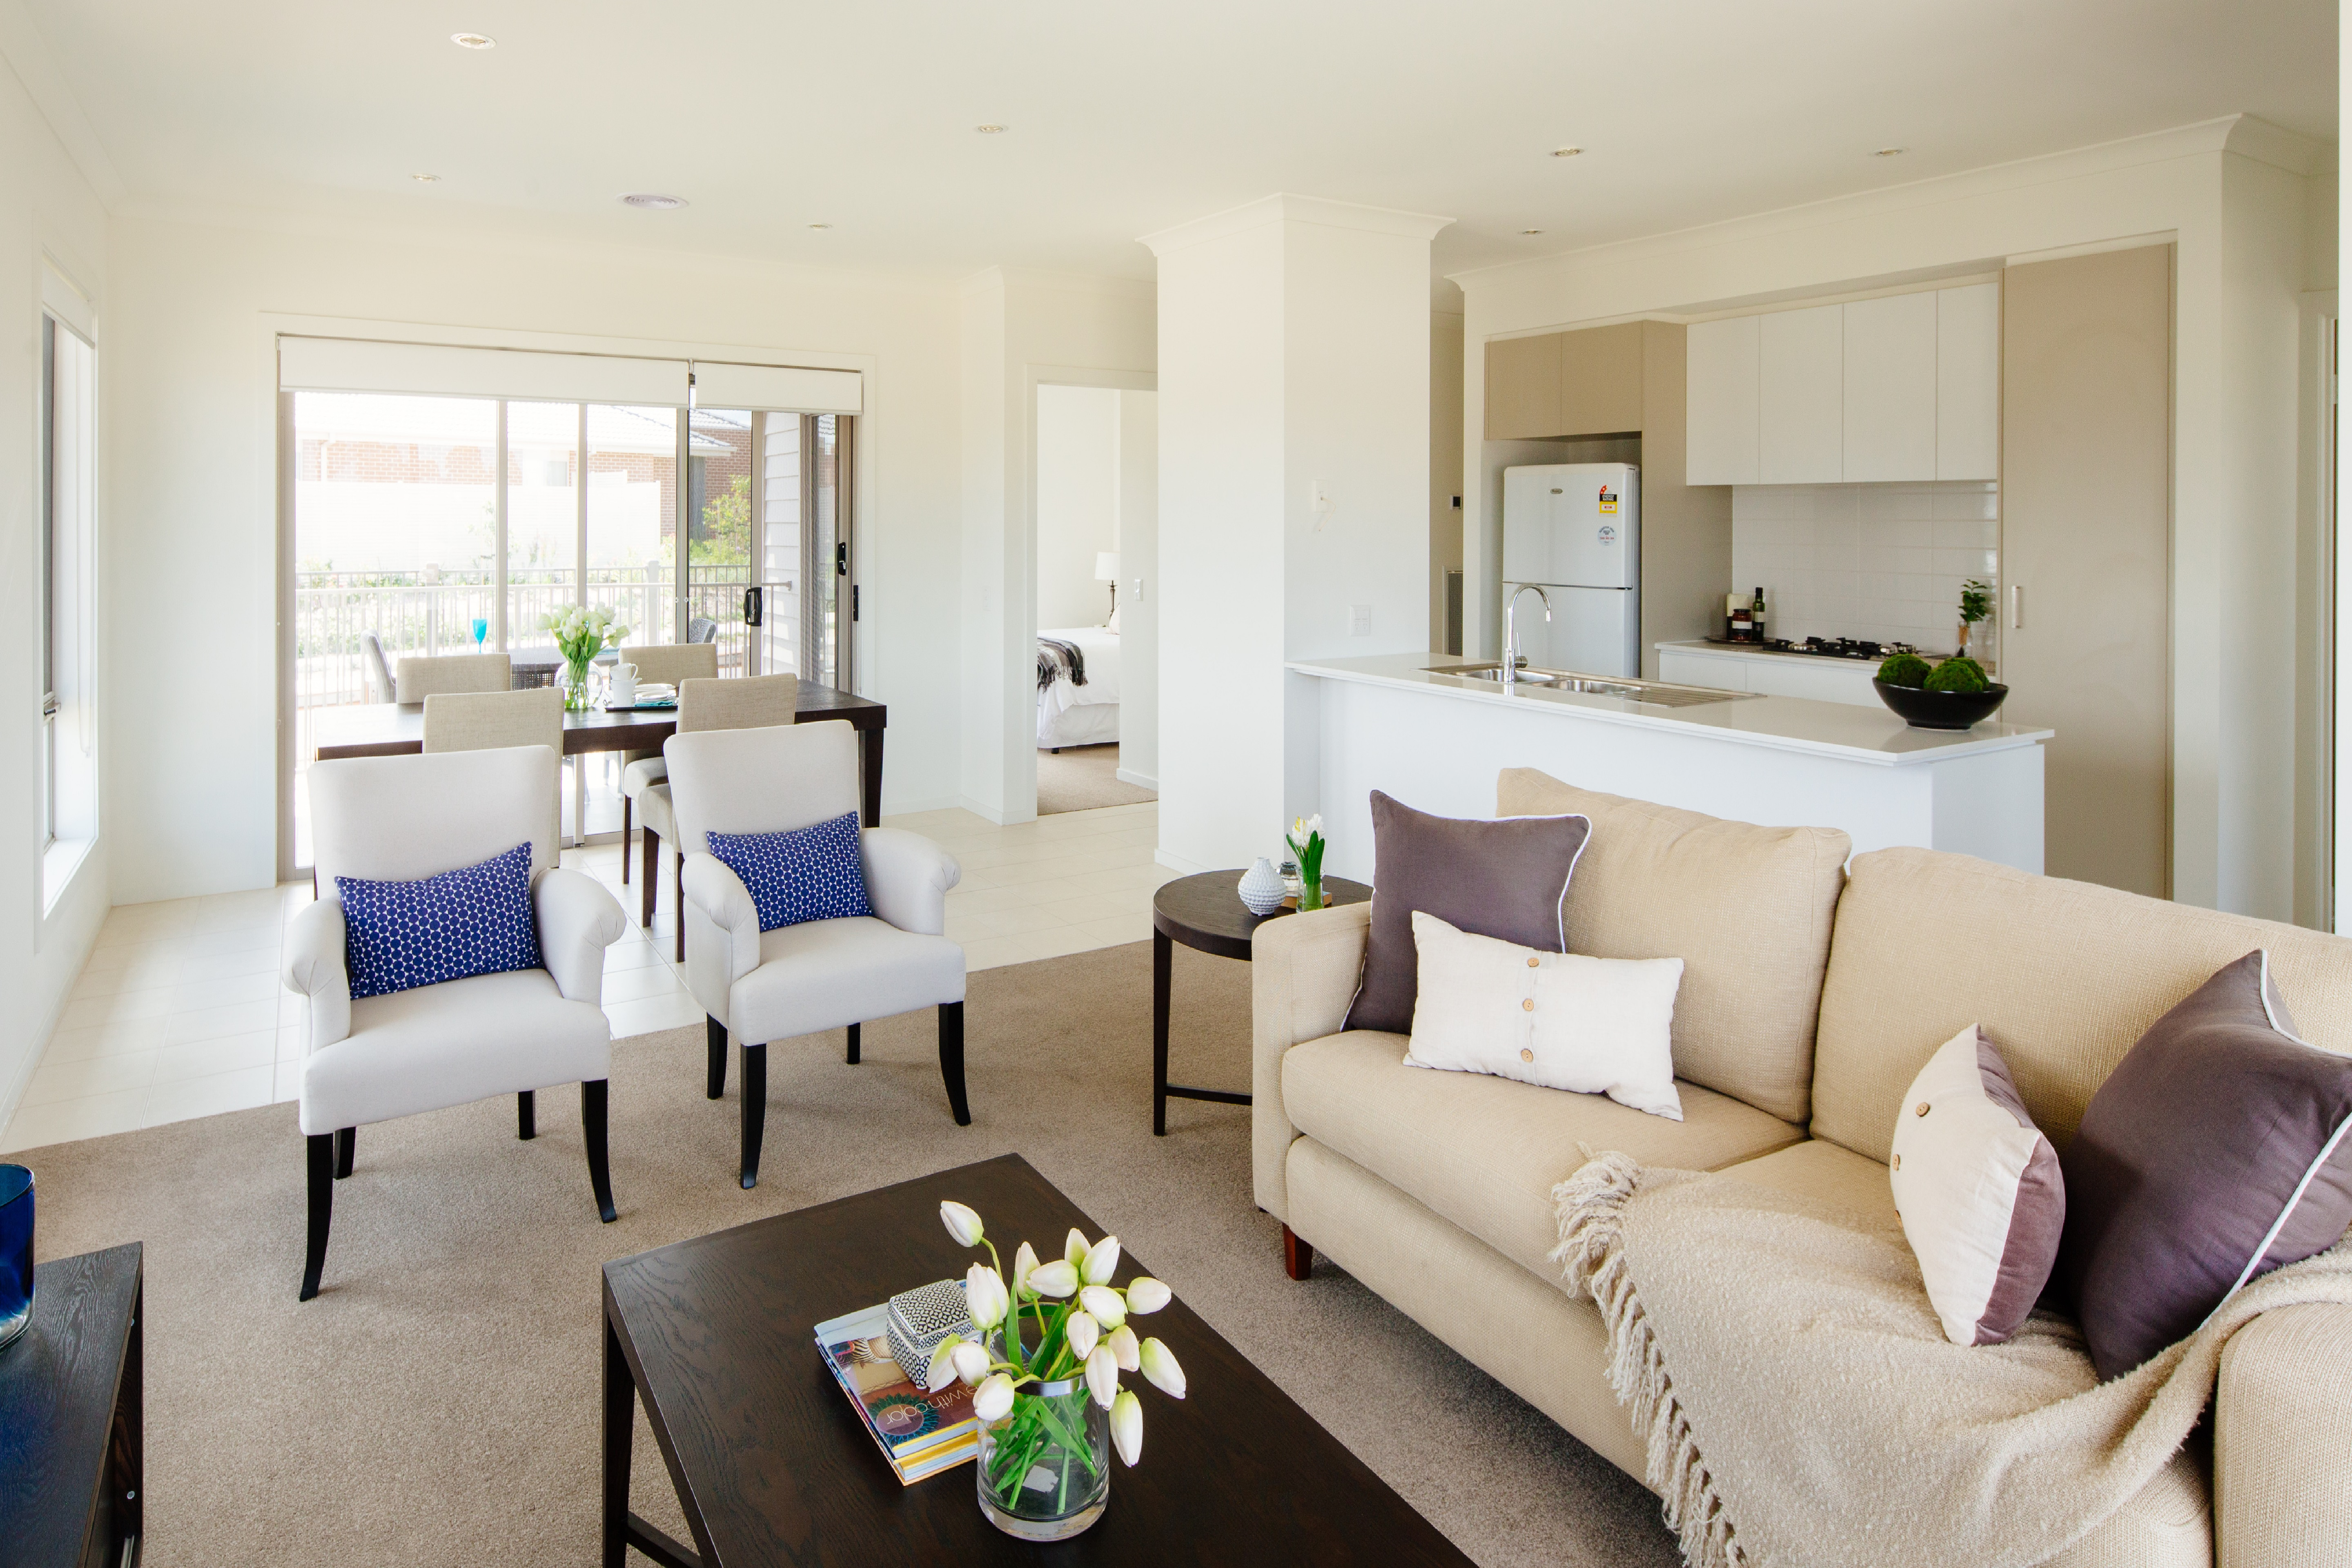 Mernda Retirement Living Villa Study 2 Bed 2 Bath 1 Car